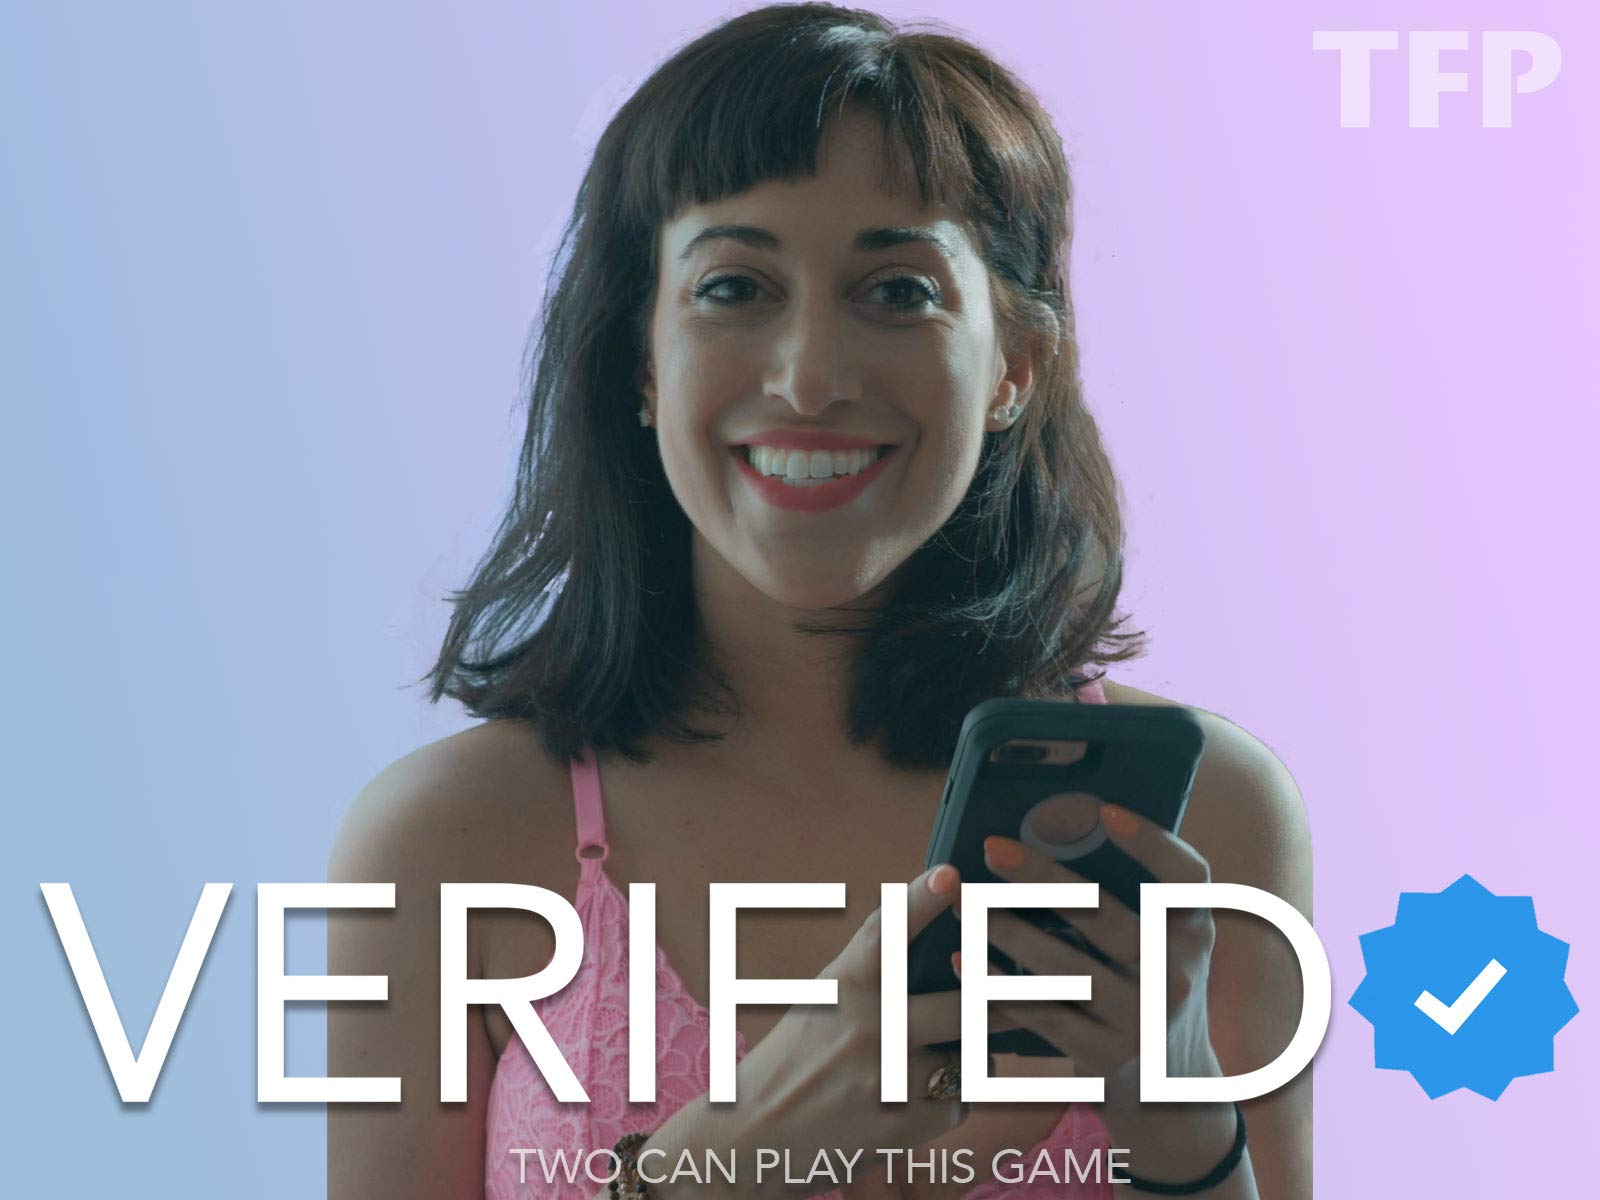 Verified - Season 1